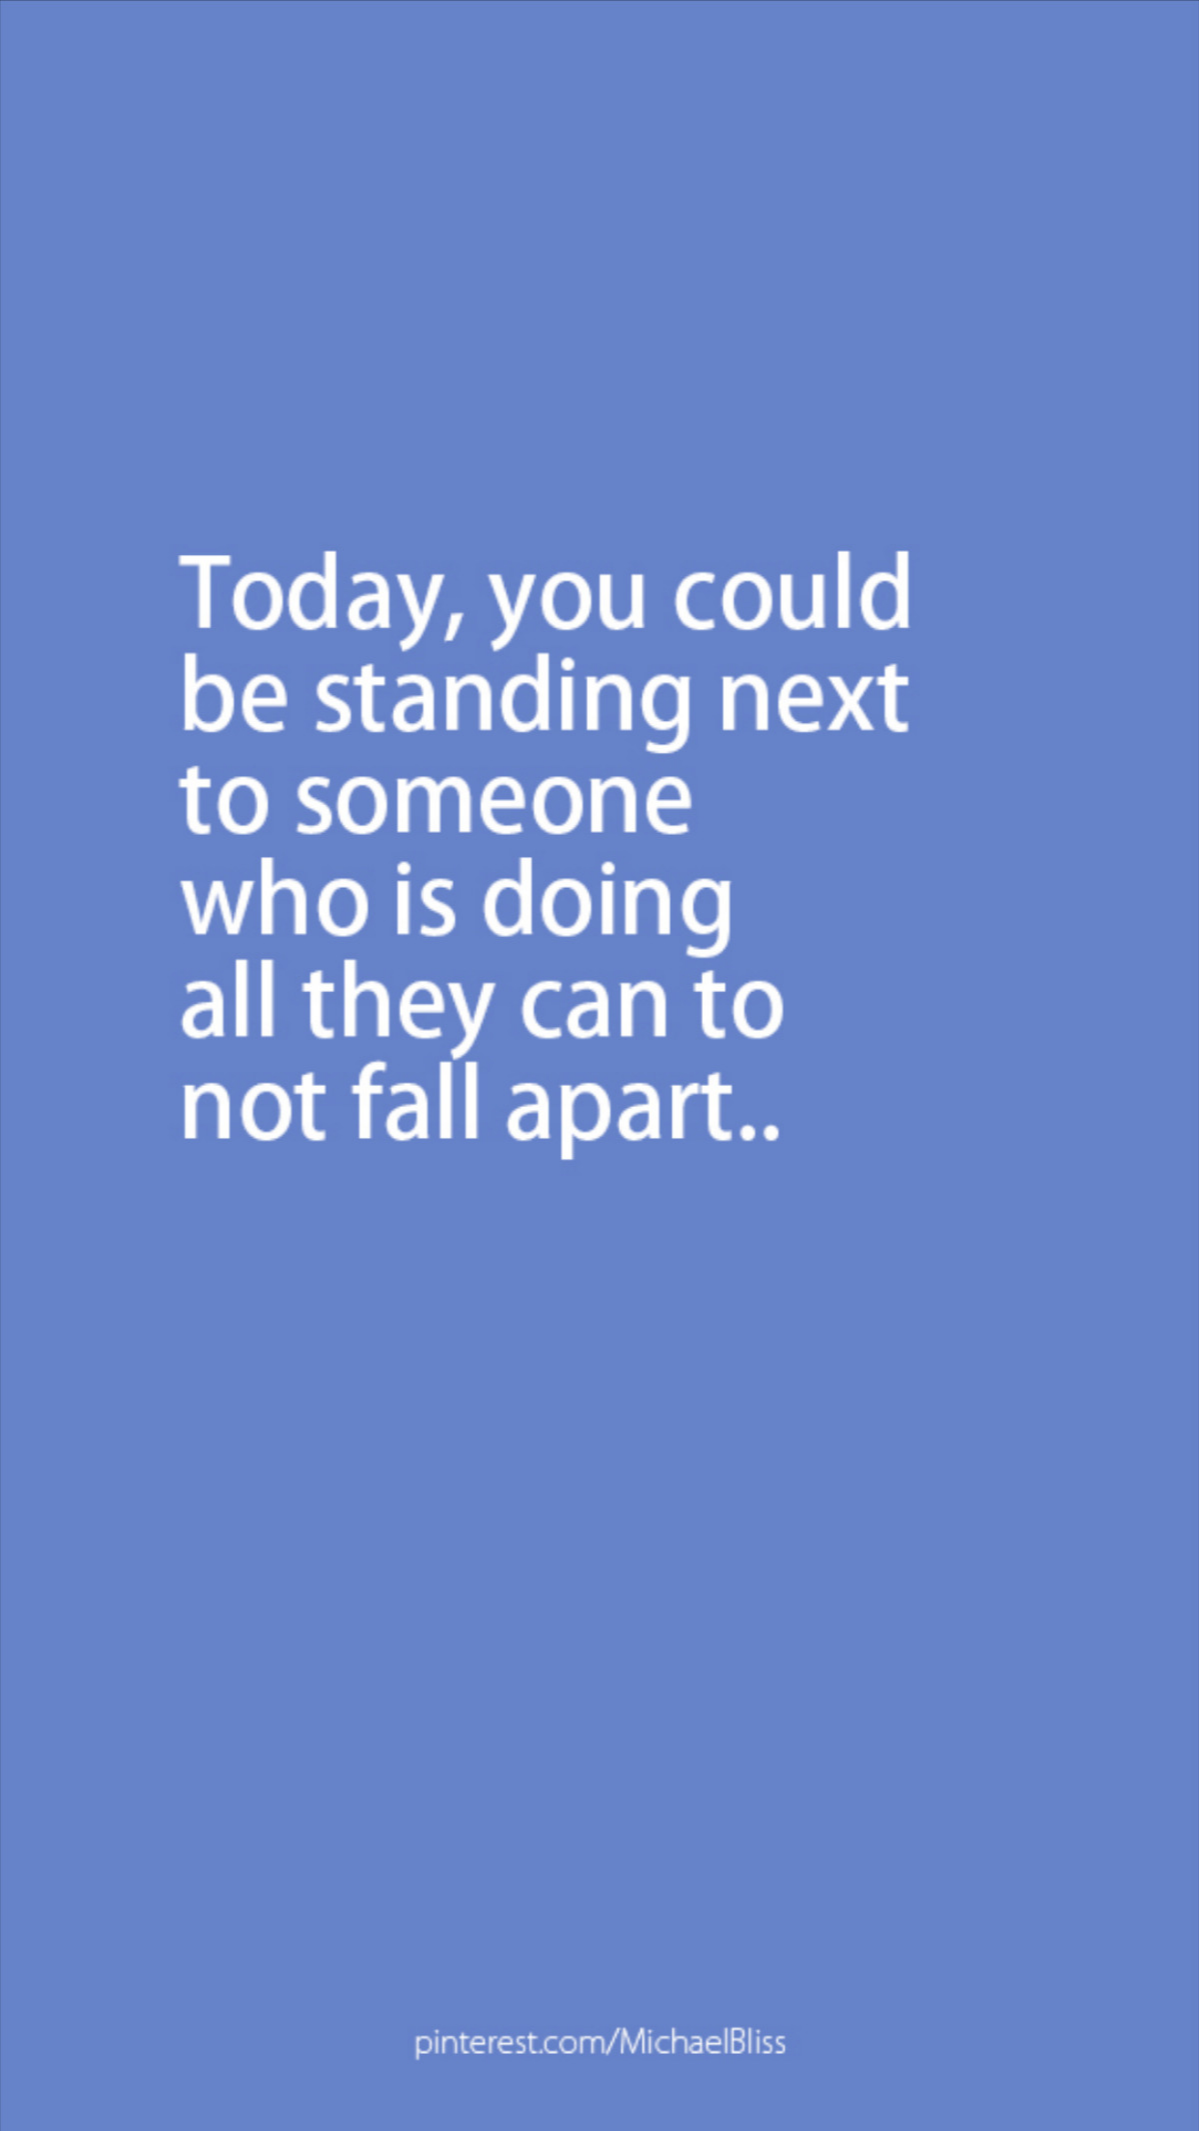 Today, you could be standing next to someone who is doing all they can to not fall apart..